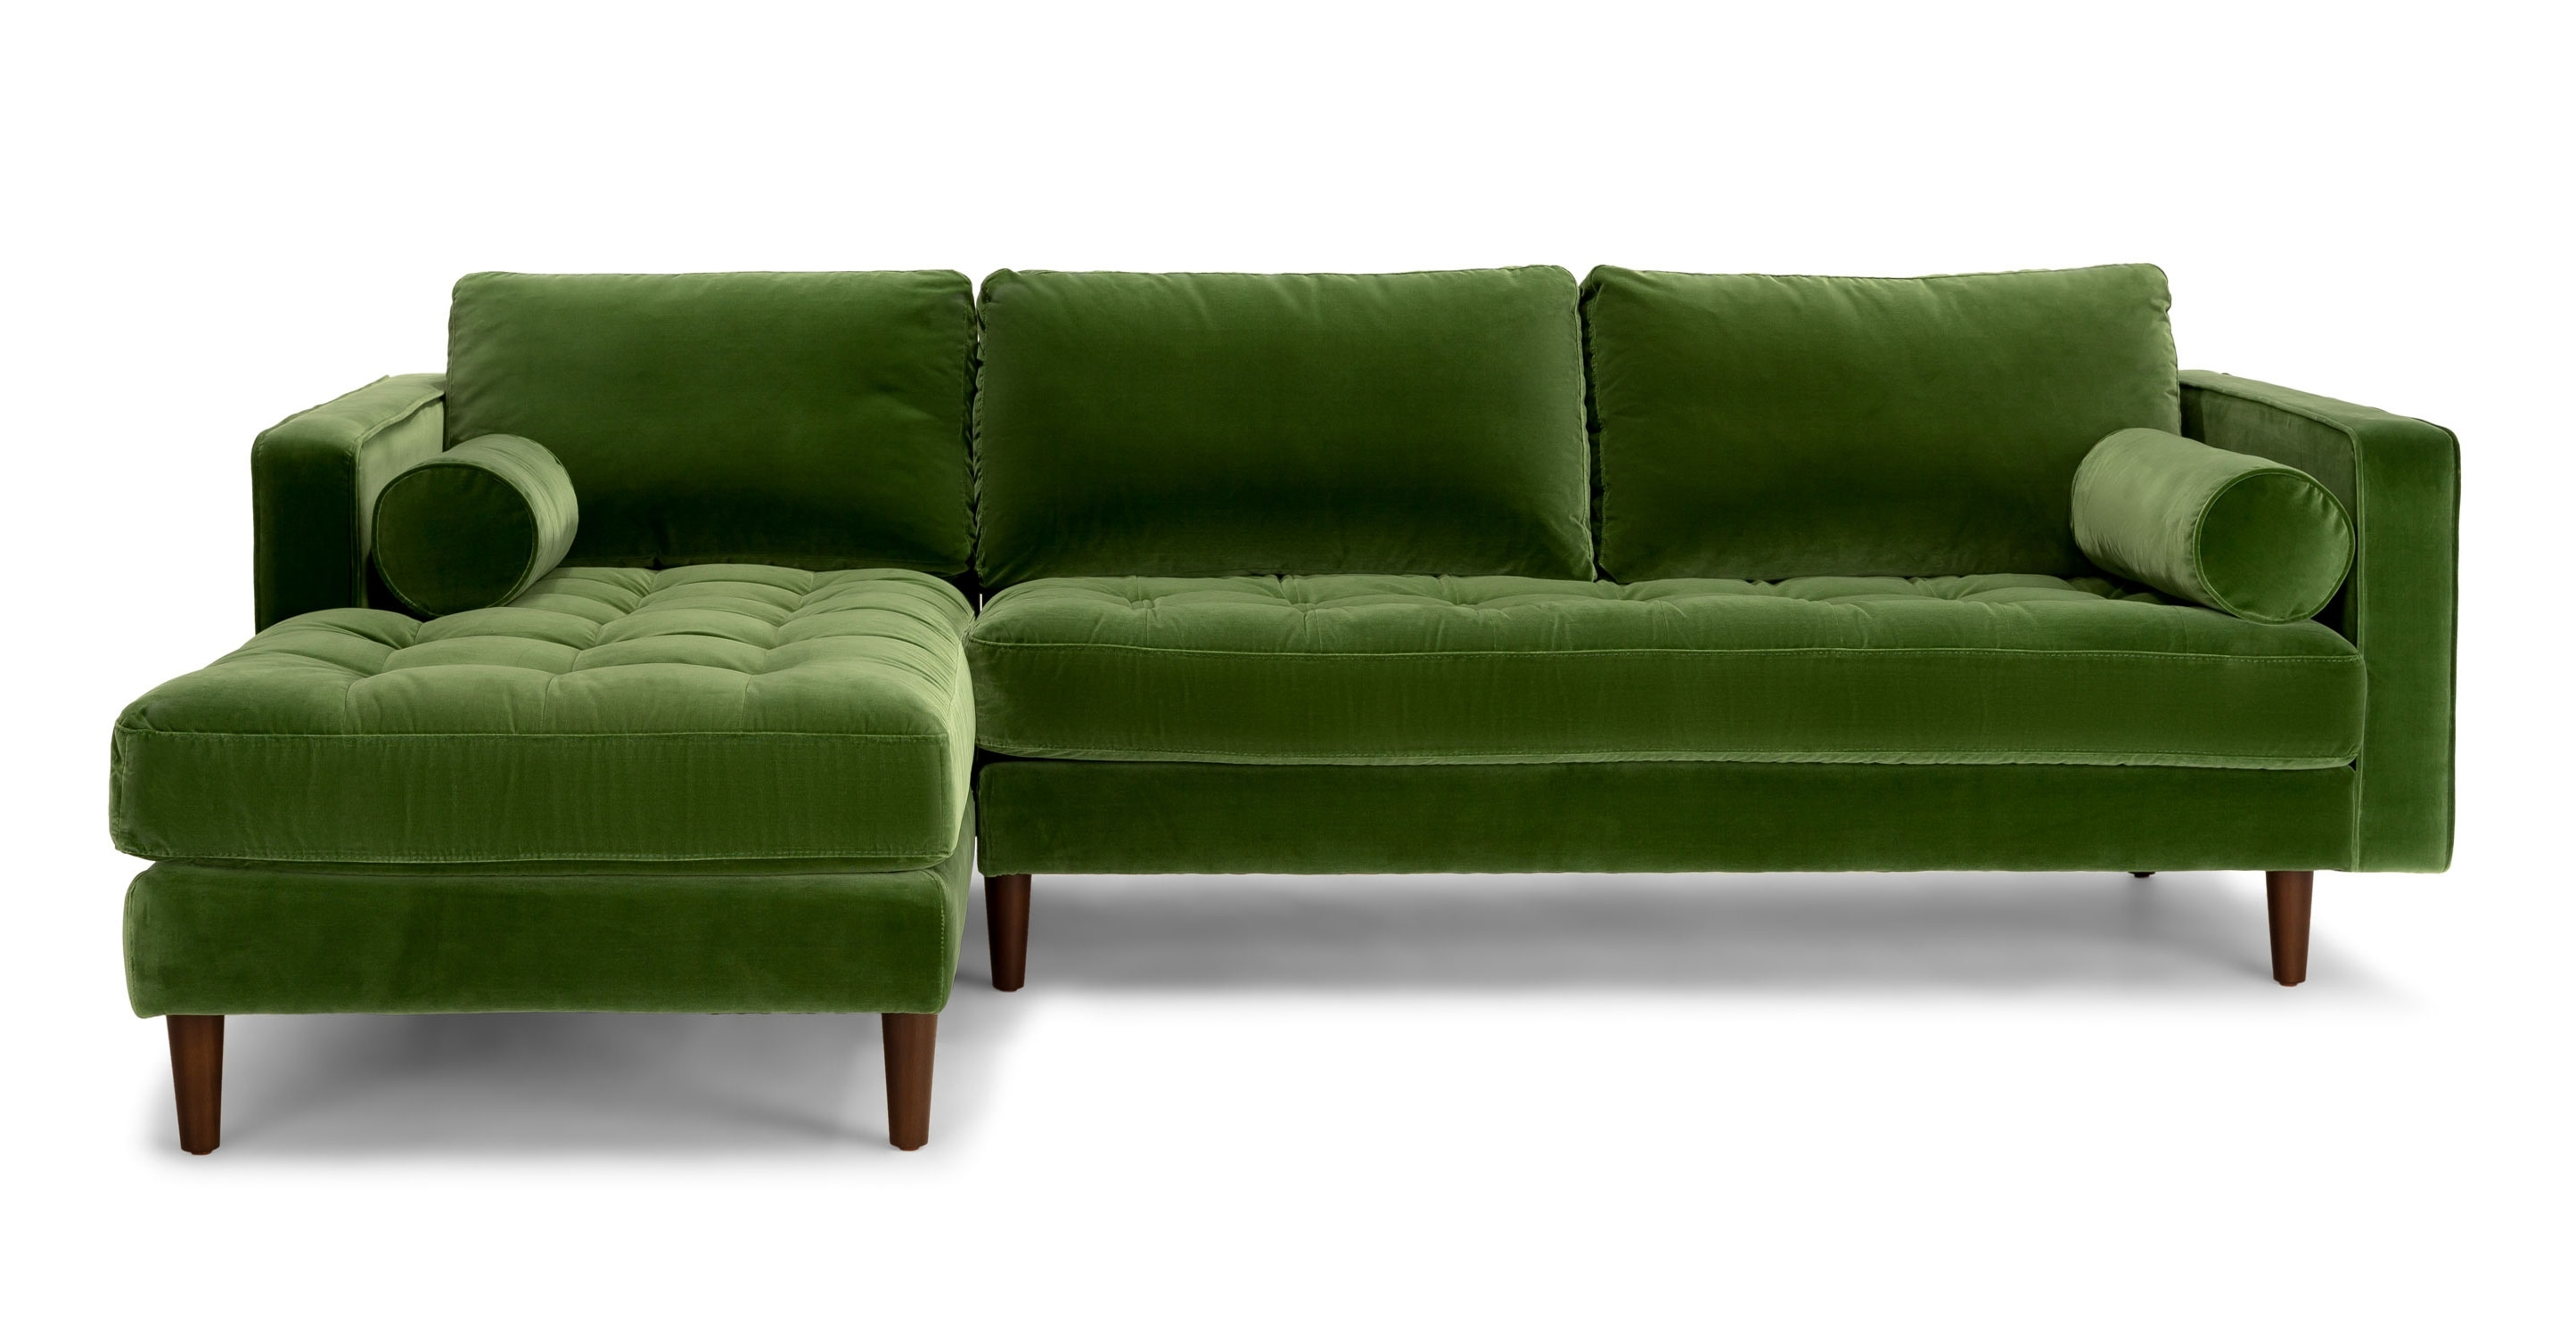 Green Sectional Sofa With Chaise – Hotelsbacau For Green Sectional Sofas With Chaise (View 10 of 10)